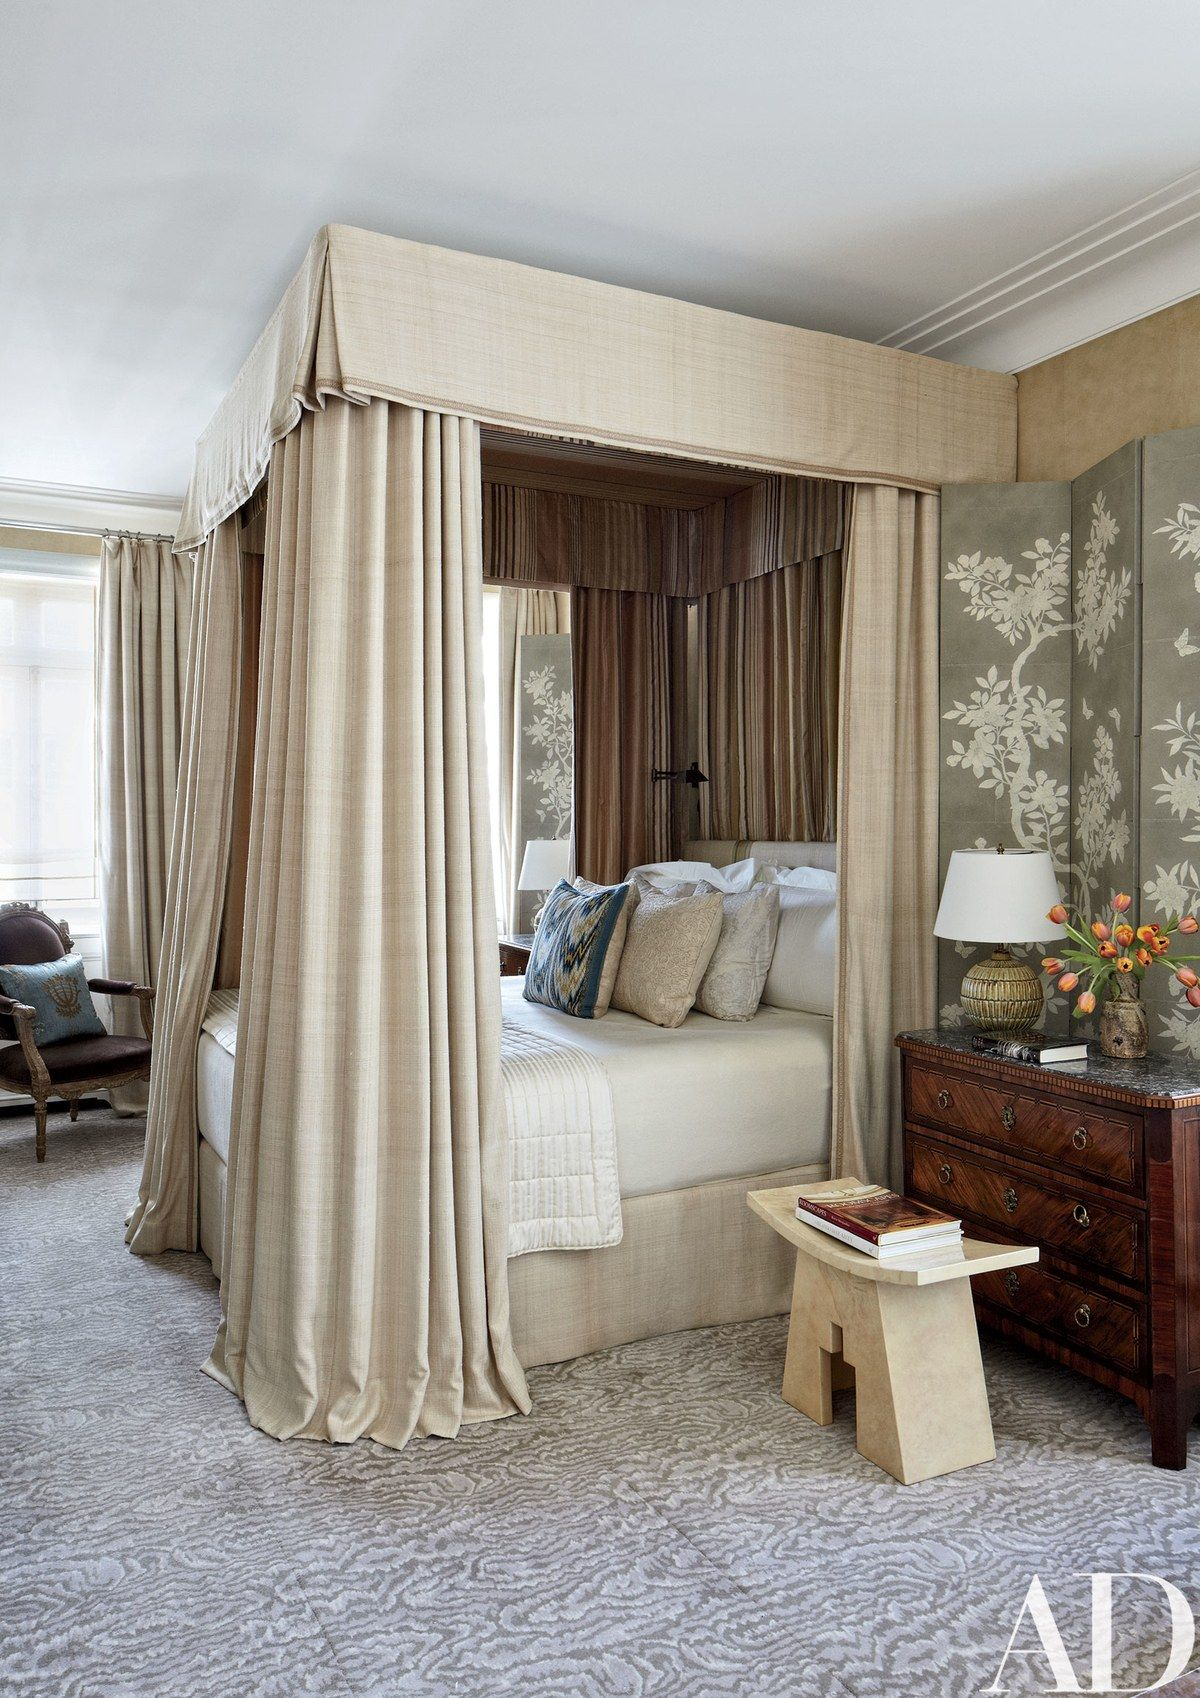 In A Guest Room, The Walls And Folding Screens Are